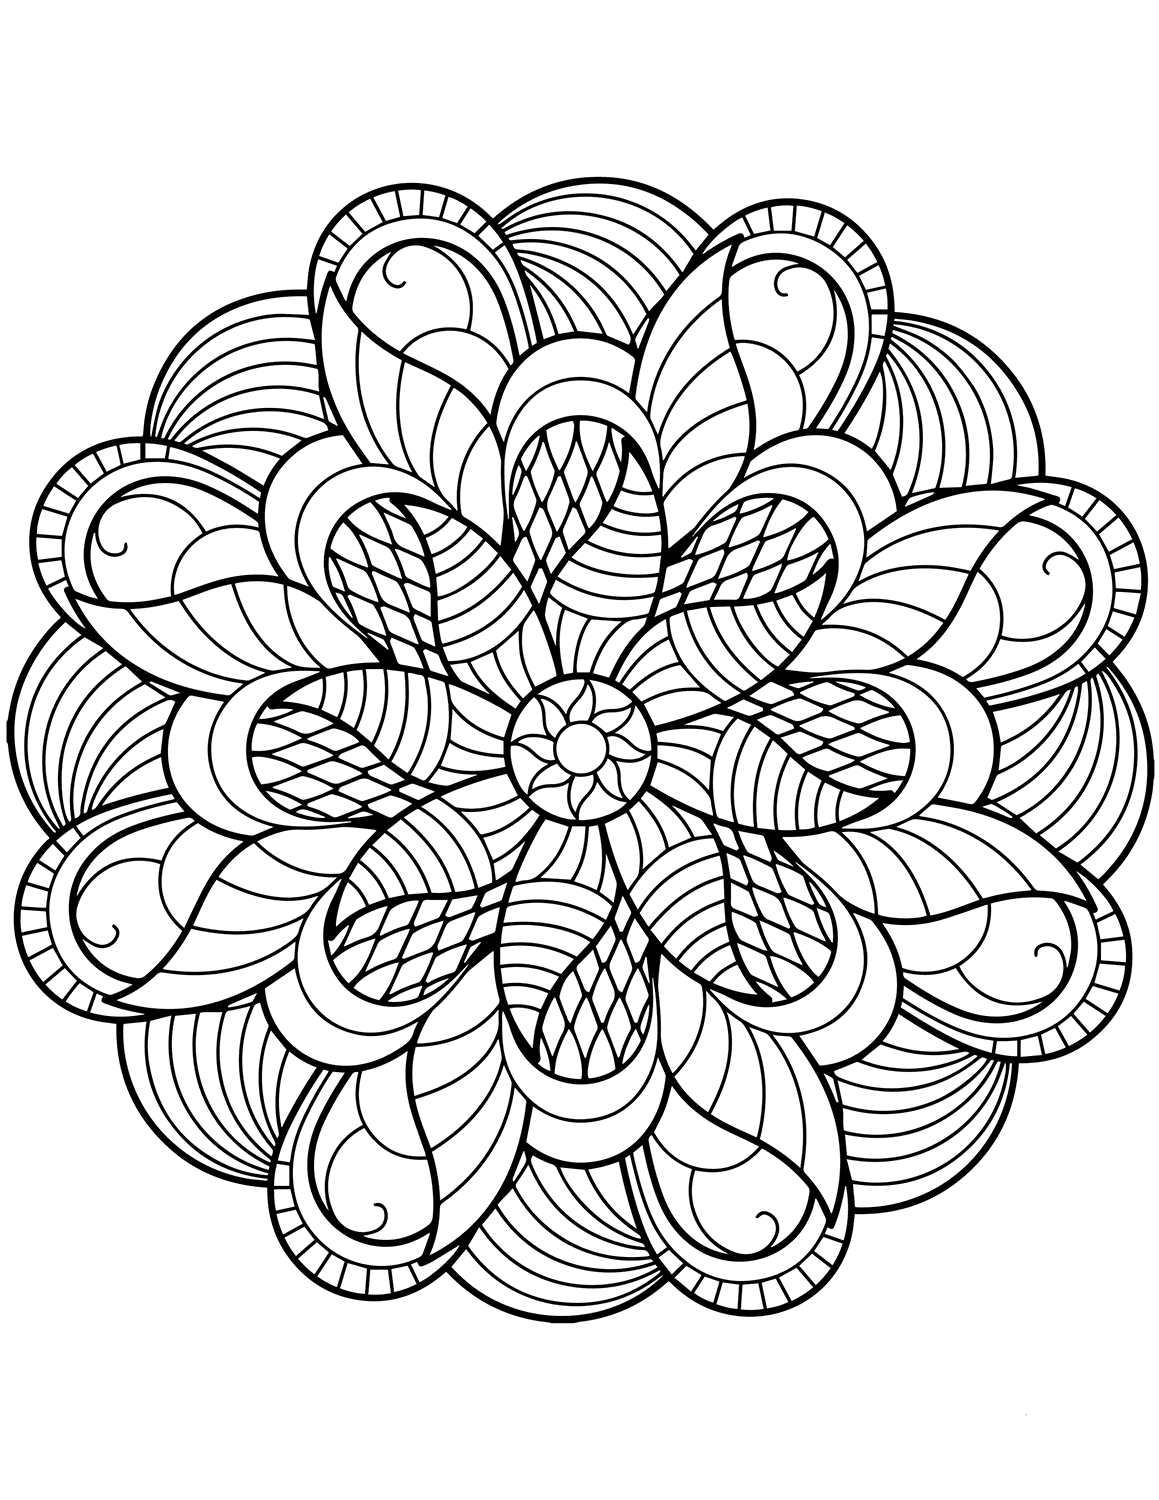 free printable mandala coloring sheets free printable mandalas for kids best coloring pages for free mandala printable sheets coloring